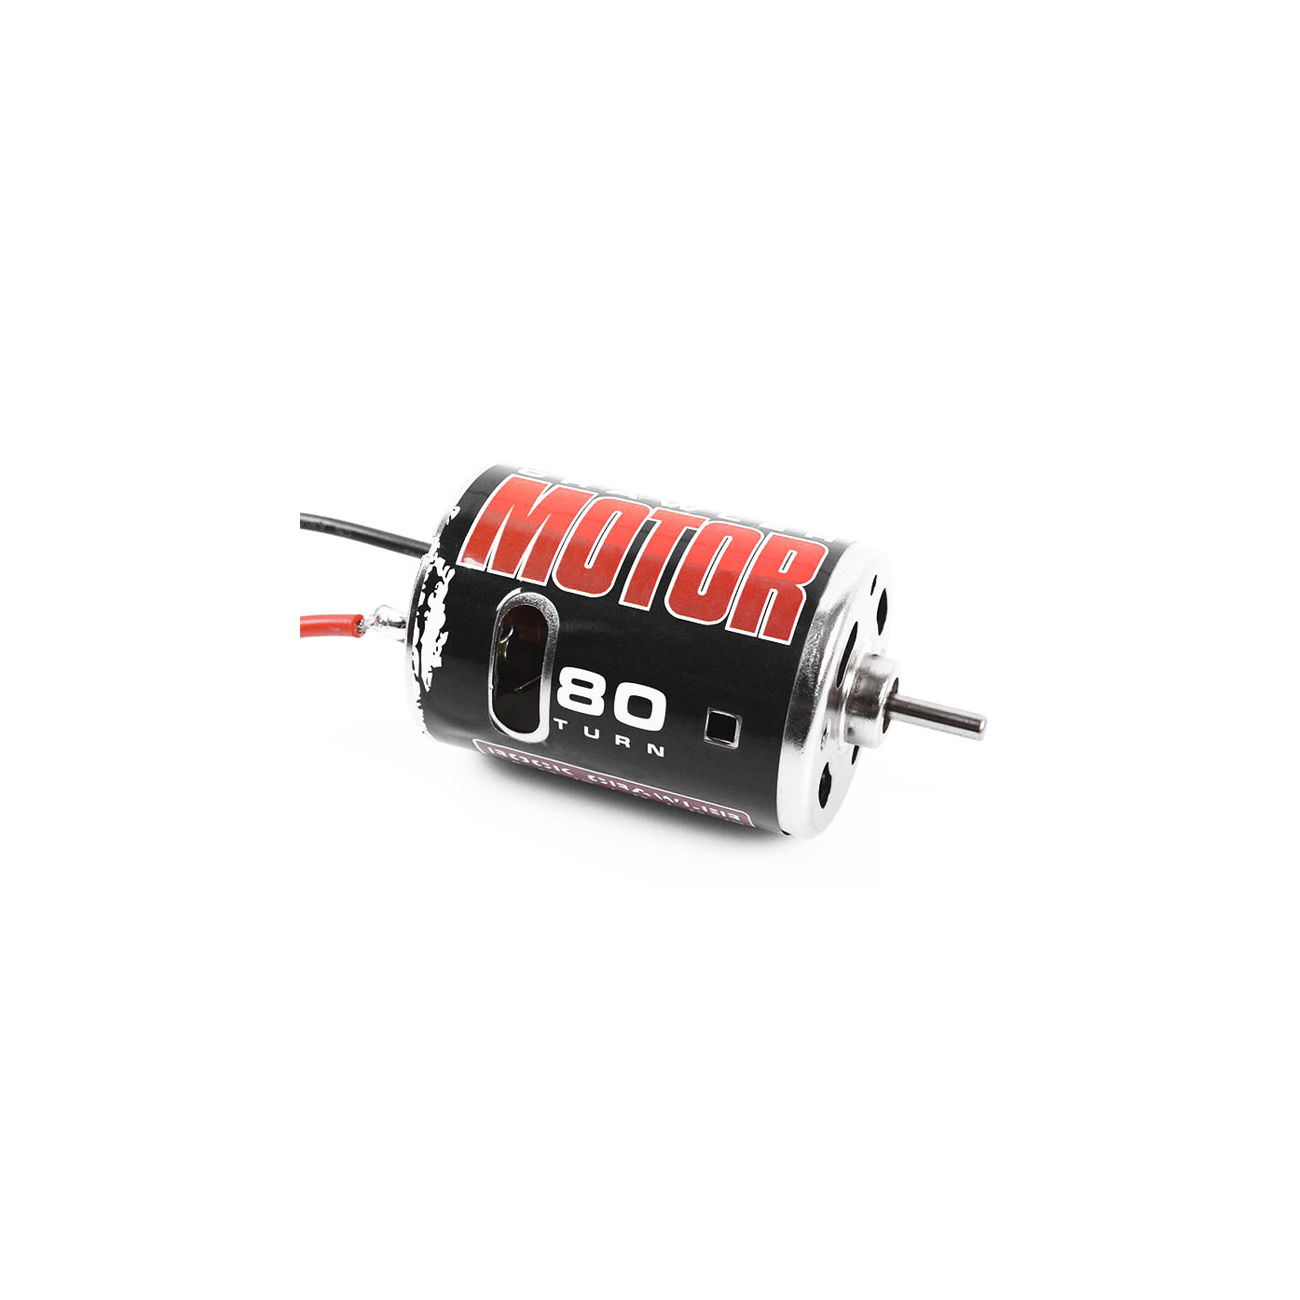 RC4WD Crawler Brushed 540er Motor 80 Turns Z-E0001 0